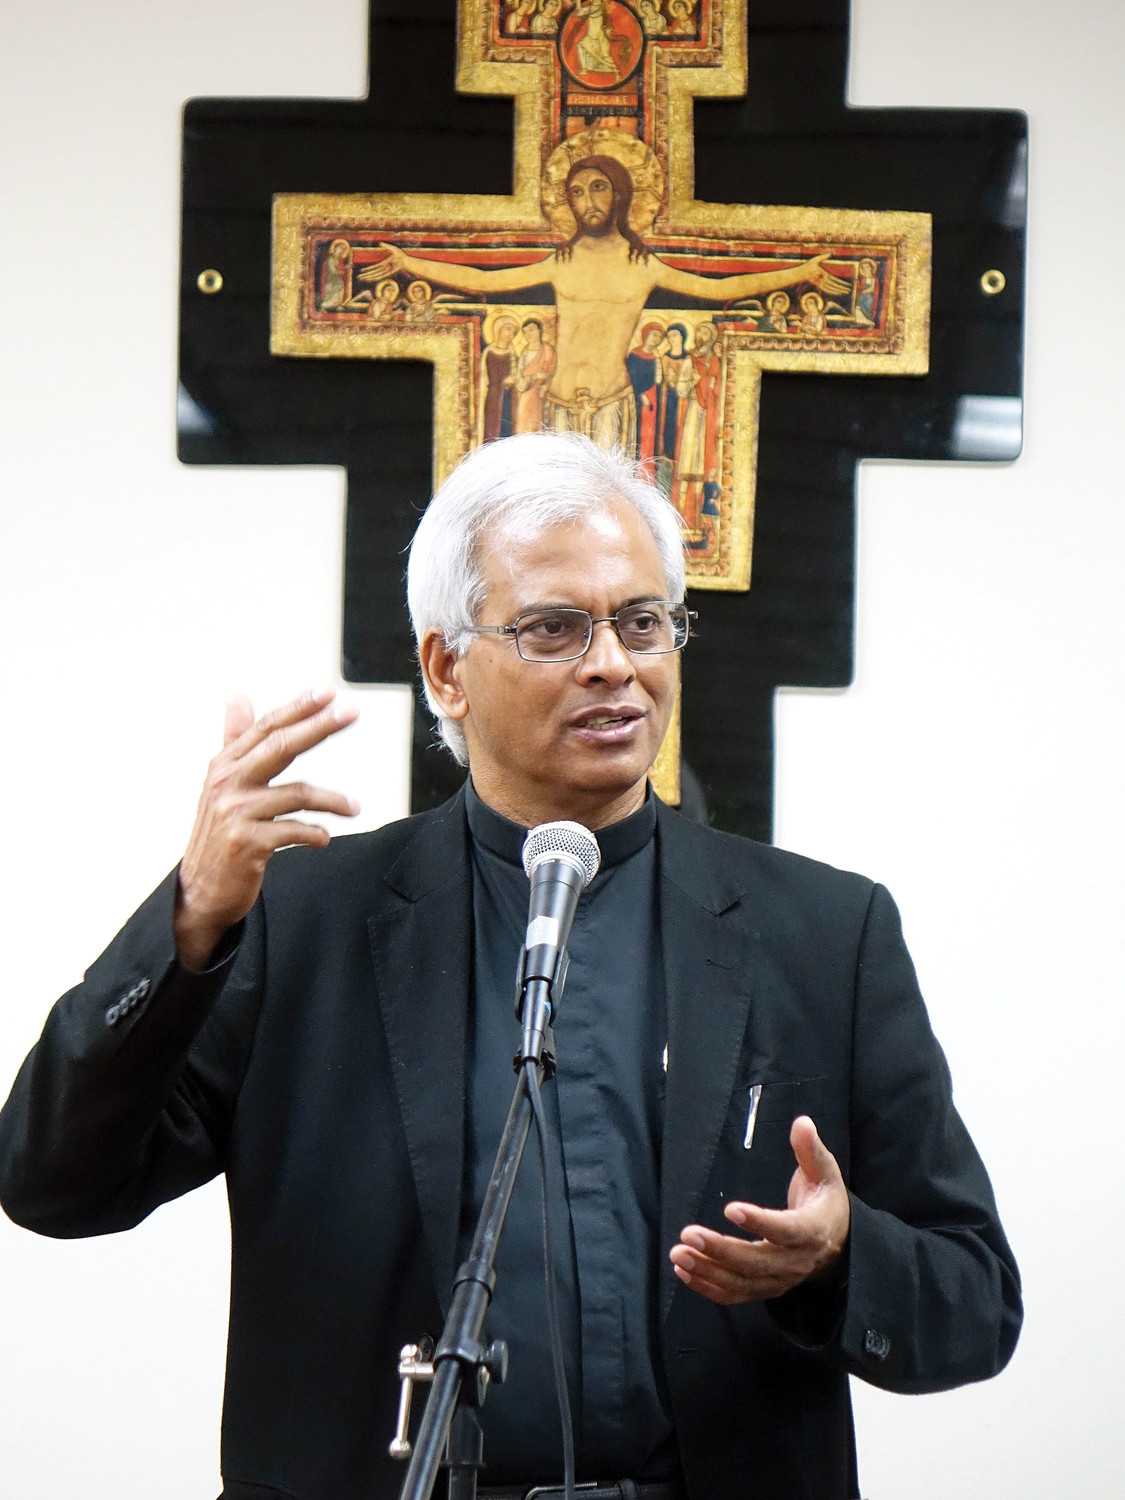 Father Tom Uzhunnalil, S.D.B. addresses attendees at his Sept. 5 talk at the Salesian Missions in New Rochelle. The audience included students from nearby Salesian High School in New Rochelle.